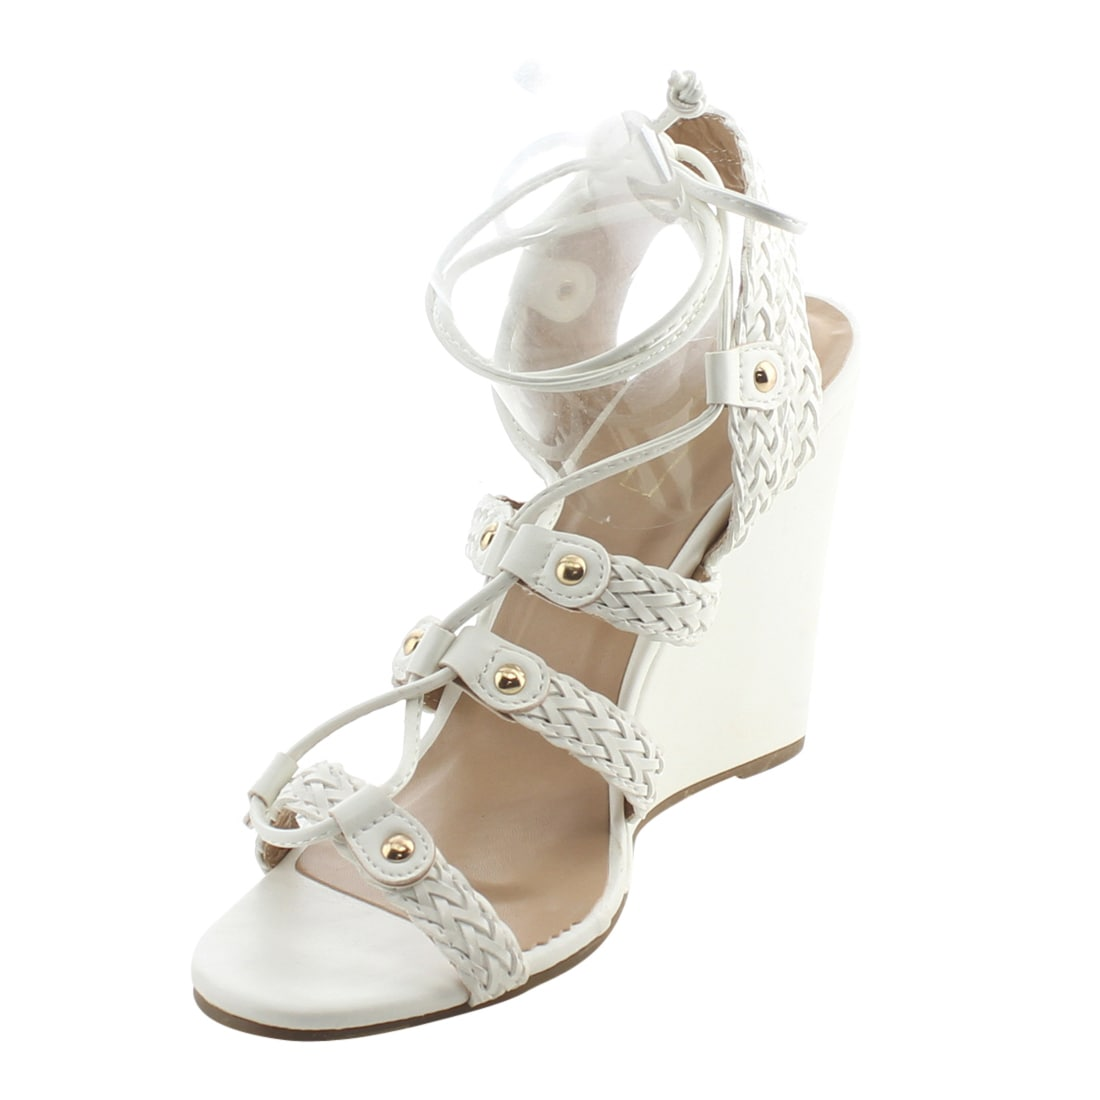 fe3be1c45680 Shop YOKI AG10 Women s Ankle Wrap Lace Up Braided Wedge Sandals - Free  Shipping On Orders Over  45 - Overstock.com - 15644211